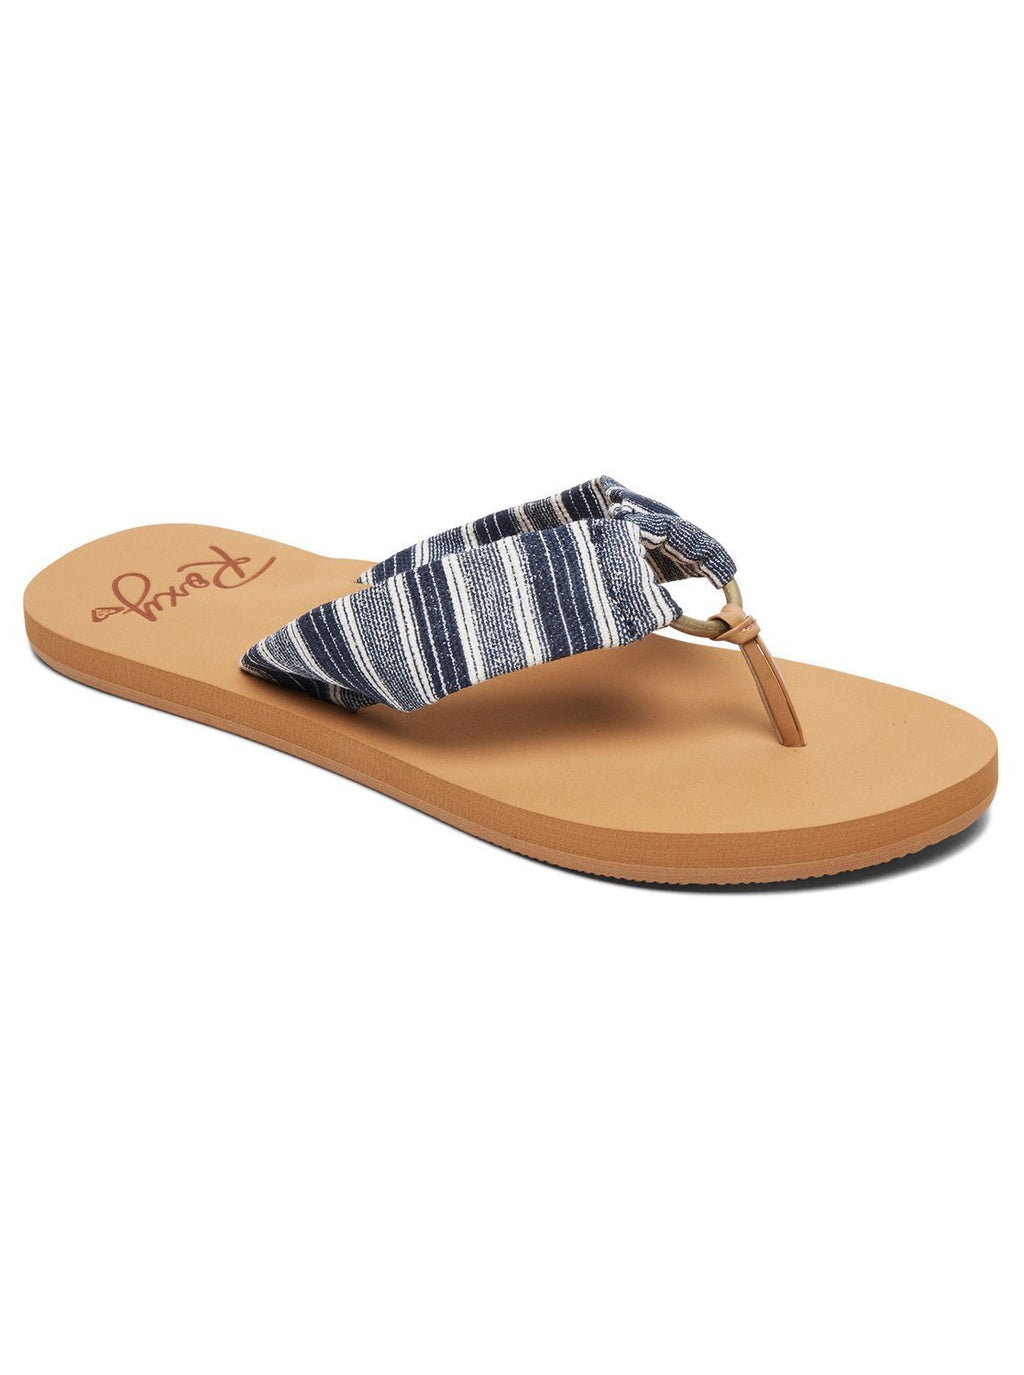 '-ROXY- Women's - Sandals 6 / Blue/White Z-ROXY - Paia Sandals